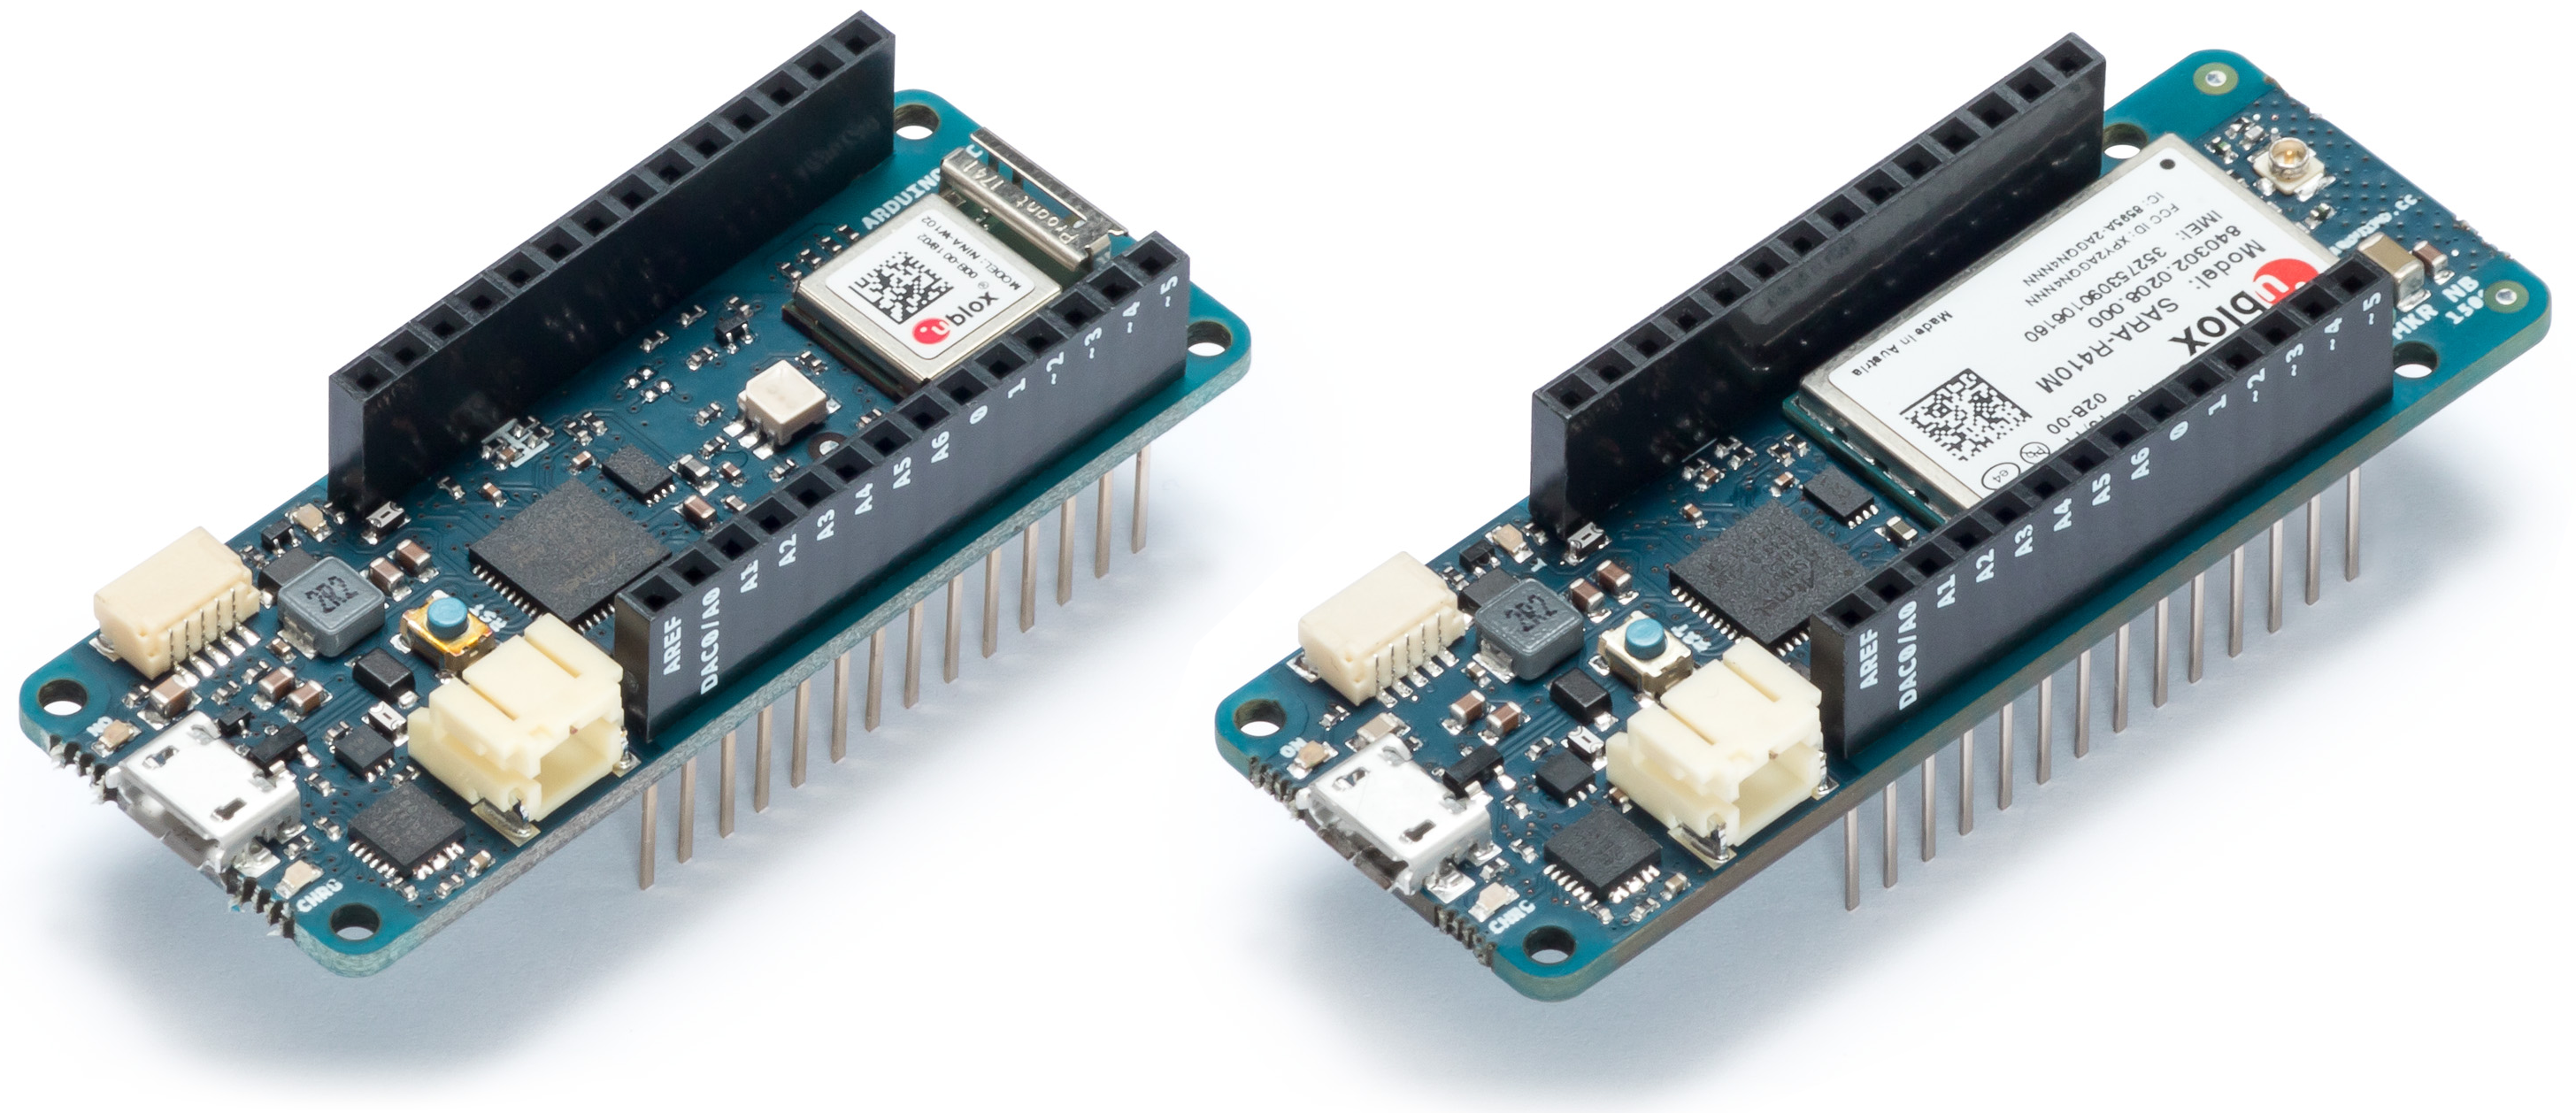 Introducing Two New Boards from Arduino - Hackster Blog